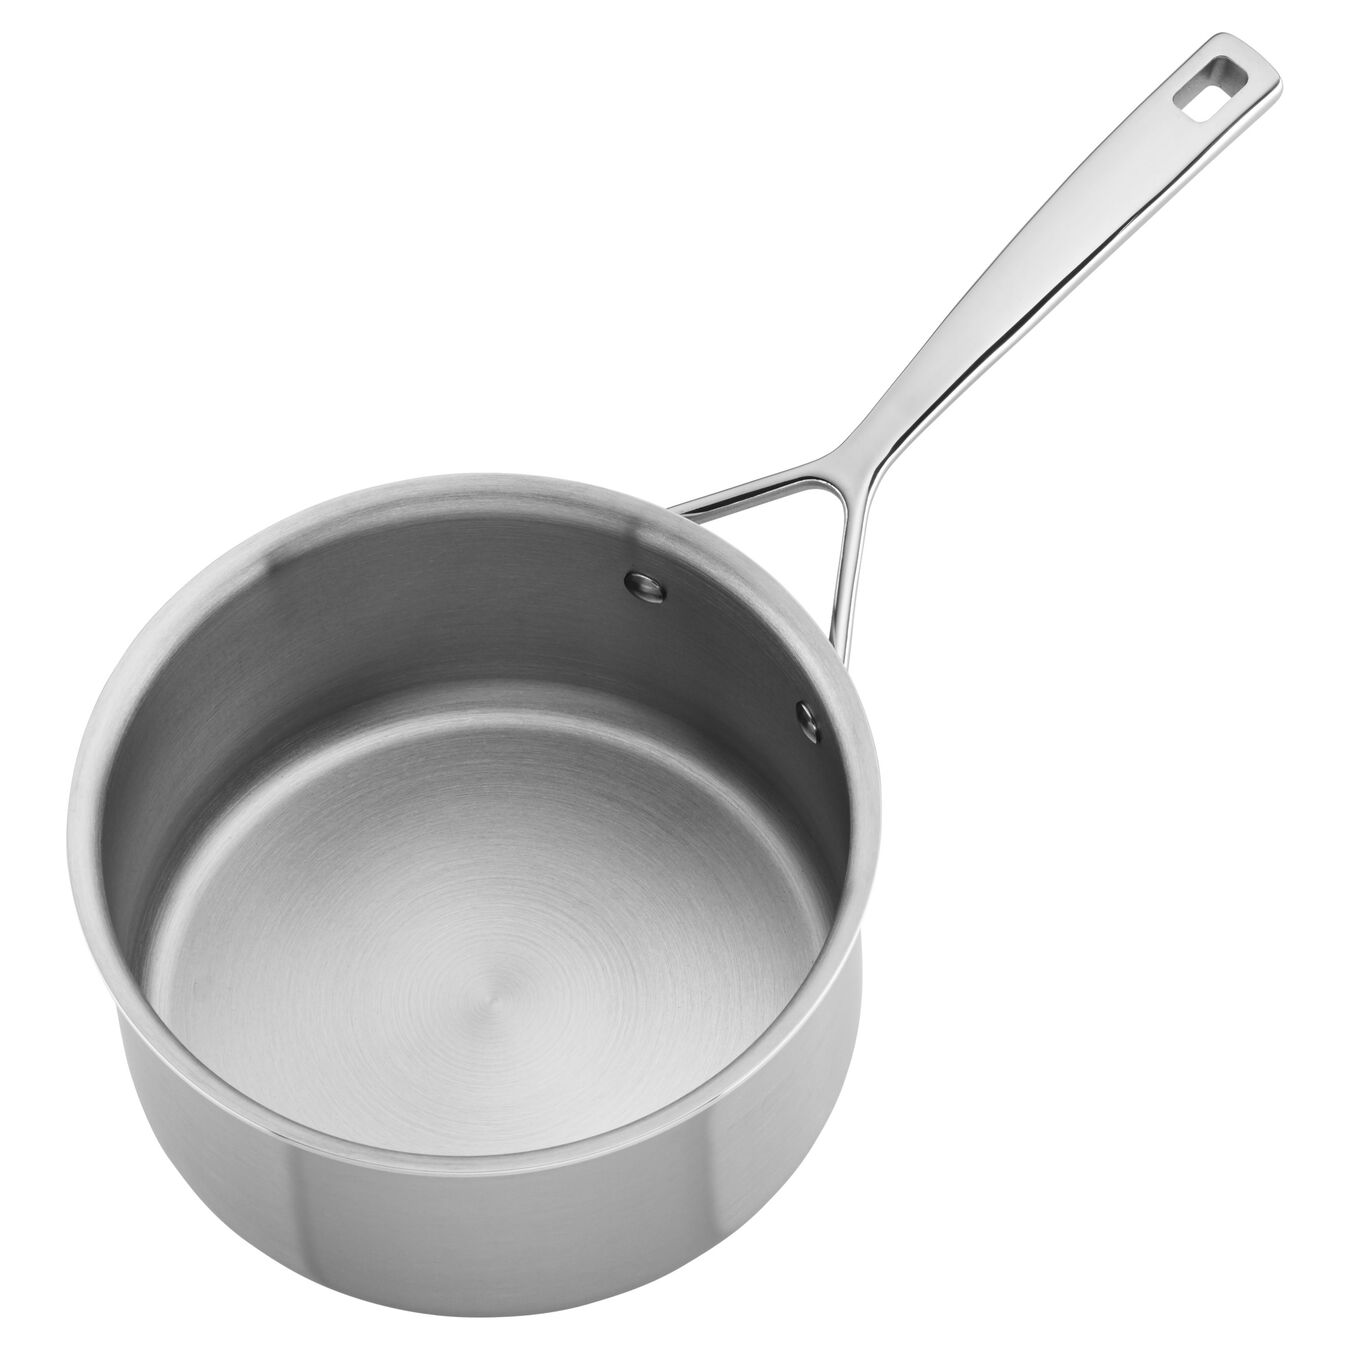 1.4 l round Sauce pan with lid, silver,,large 4